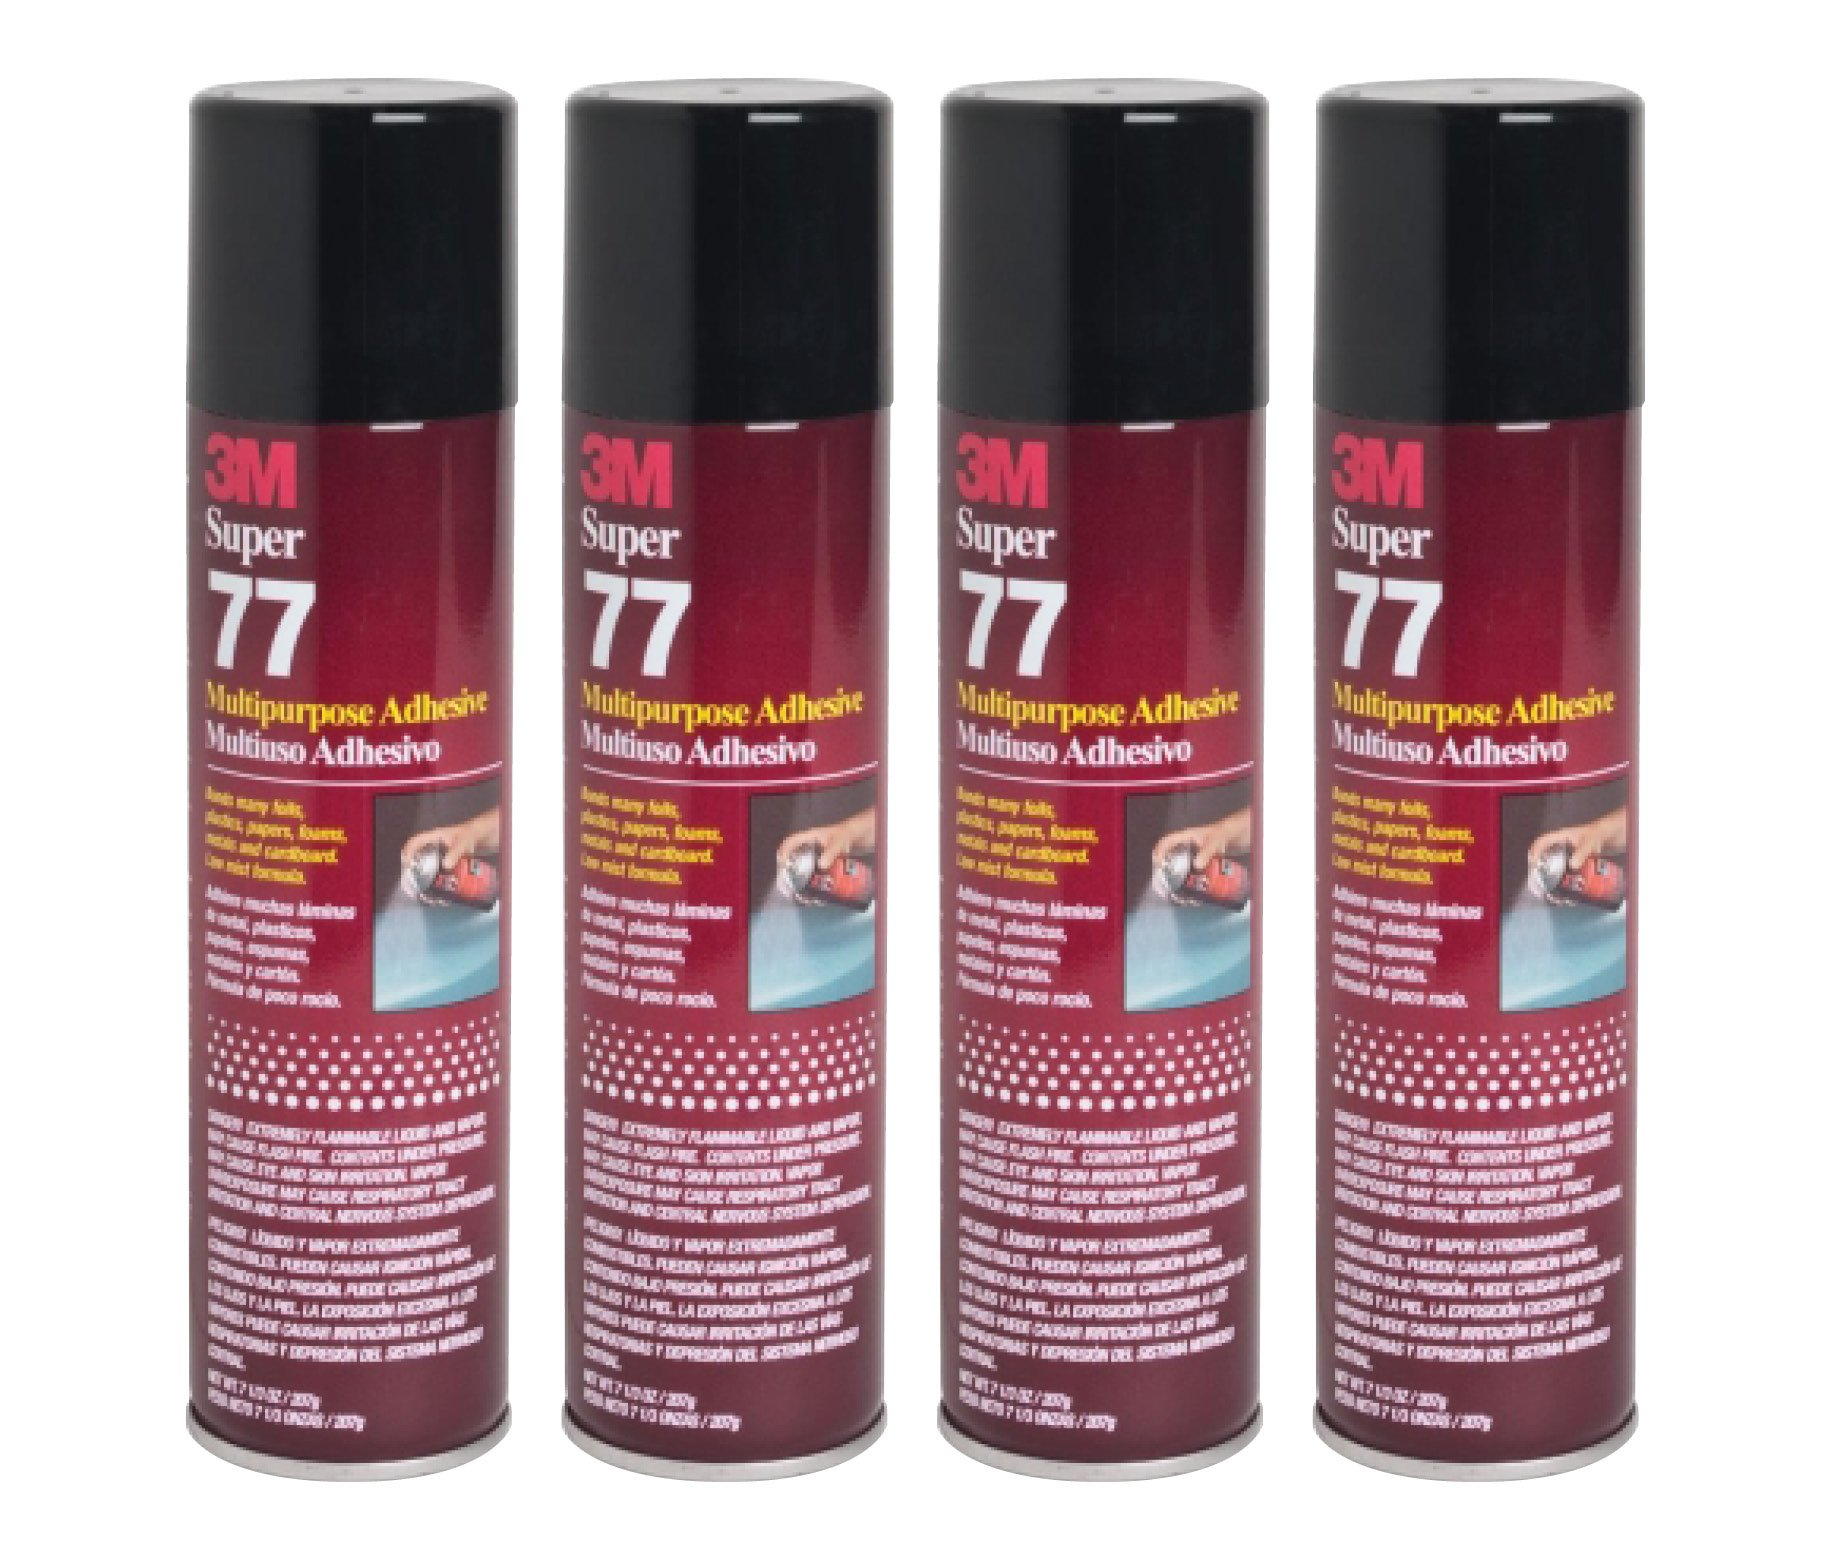 QTY4 3M SUPER 77 7.3 OZ LARGE SPRAY GLUE CAN MULTIPURPOSE ADHESIVE by 3M SUPER 77